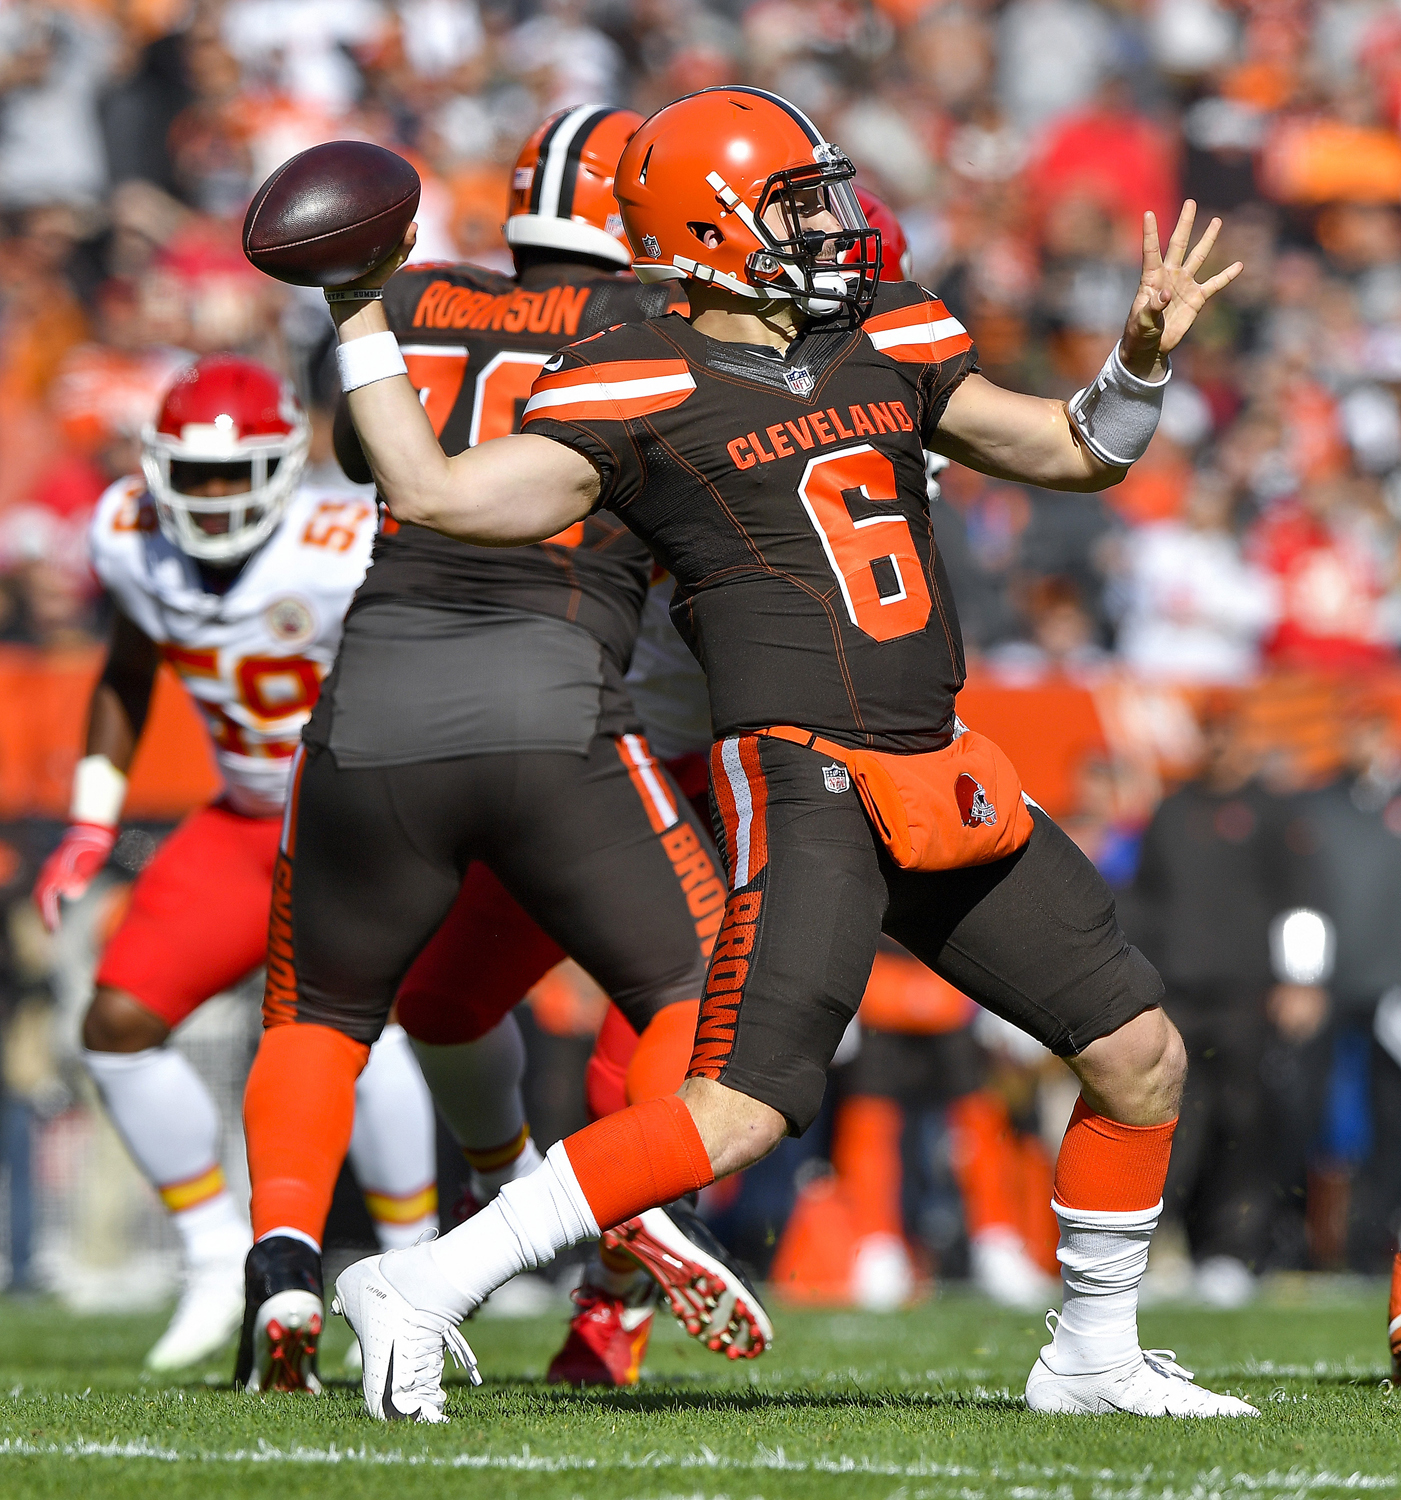 Cleveland Browns quarterback Baker Mayfield throws in the first quarter against the Kansas City Chiefs on Sunday at FirstEnergy Stadium in Cleveland.